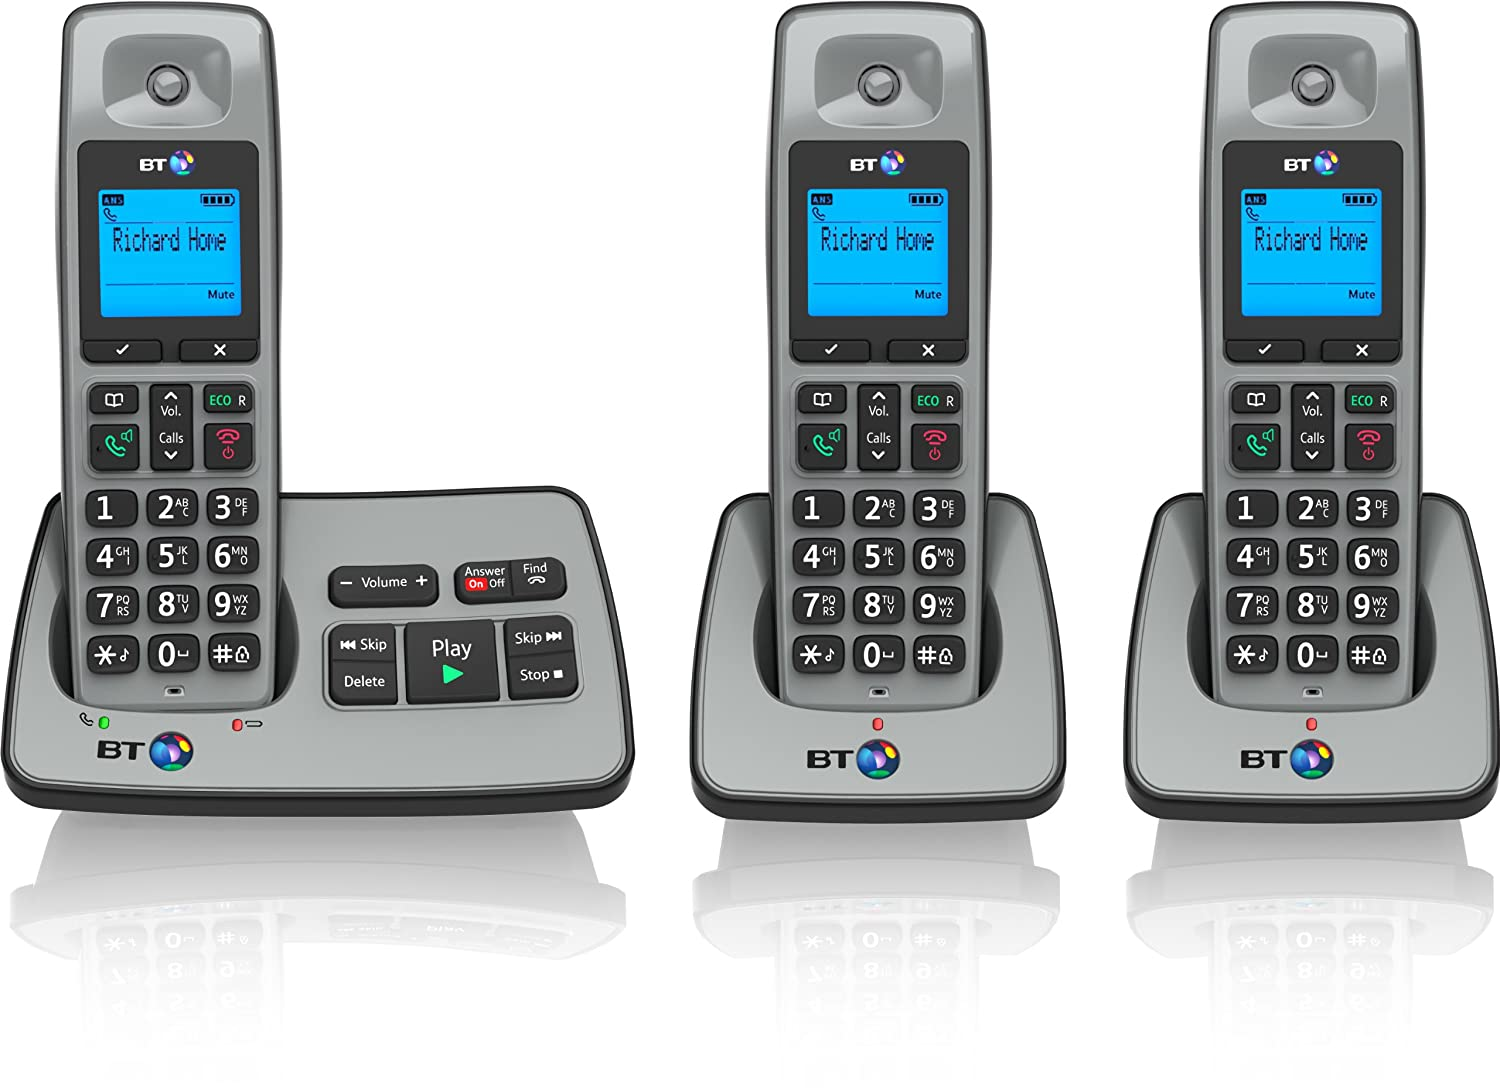 Bt 2500 Cordless Dect Phone With Answer Machine: Amazon: Electronics